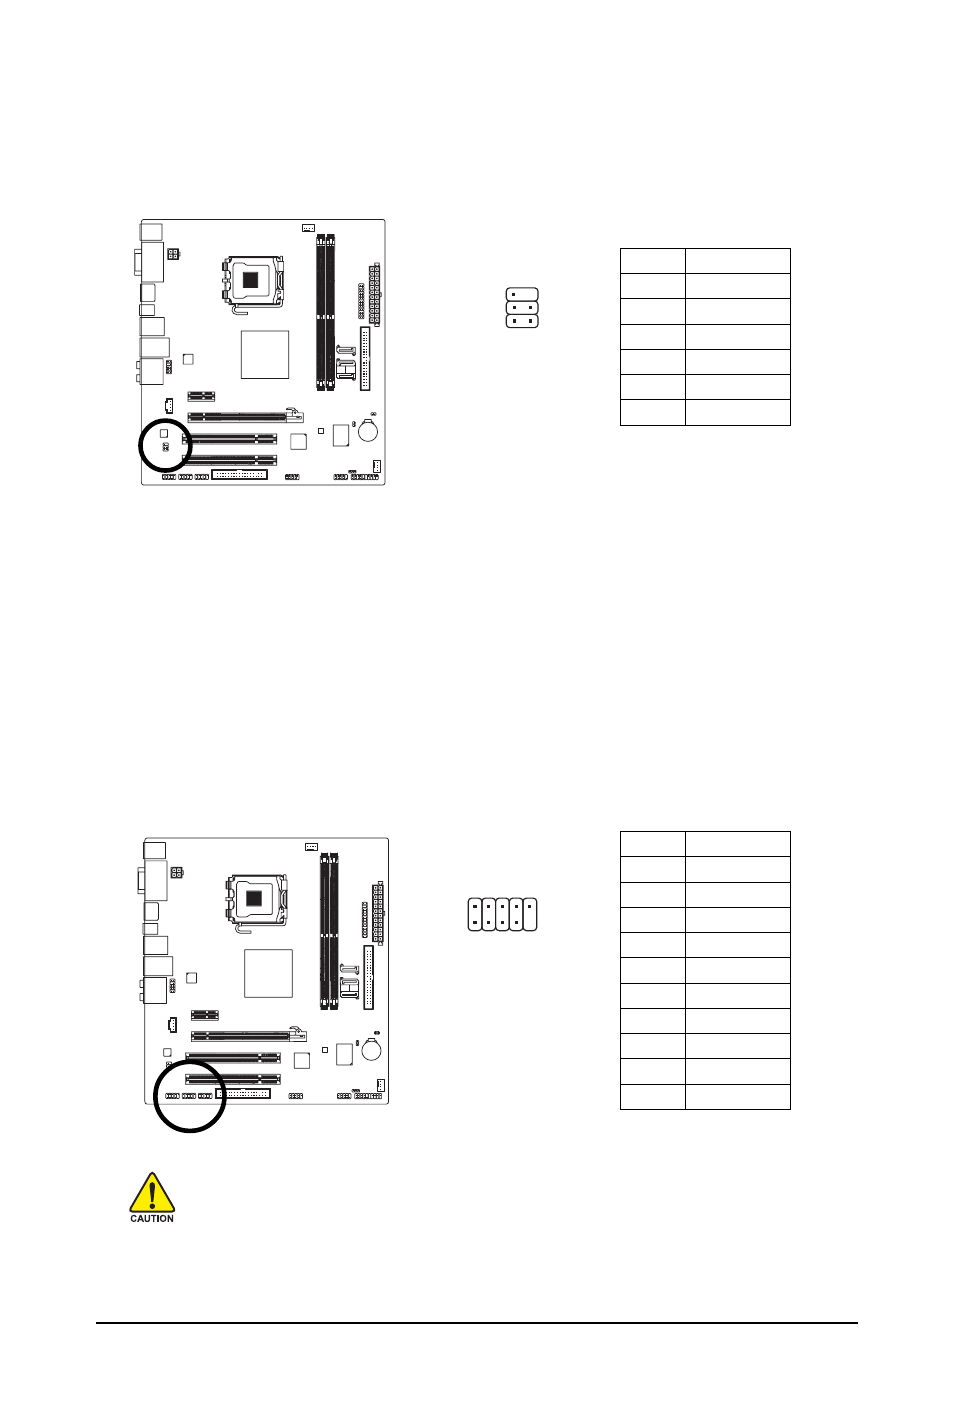 Motherboard Usb Header Diagram Explained Wiring Diagrams 865 Ibm Front 13 Spdif Io S Pdif In Out Gigabyte Lga775 Socket 2 0 To A Type Port Adapter Cable F